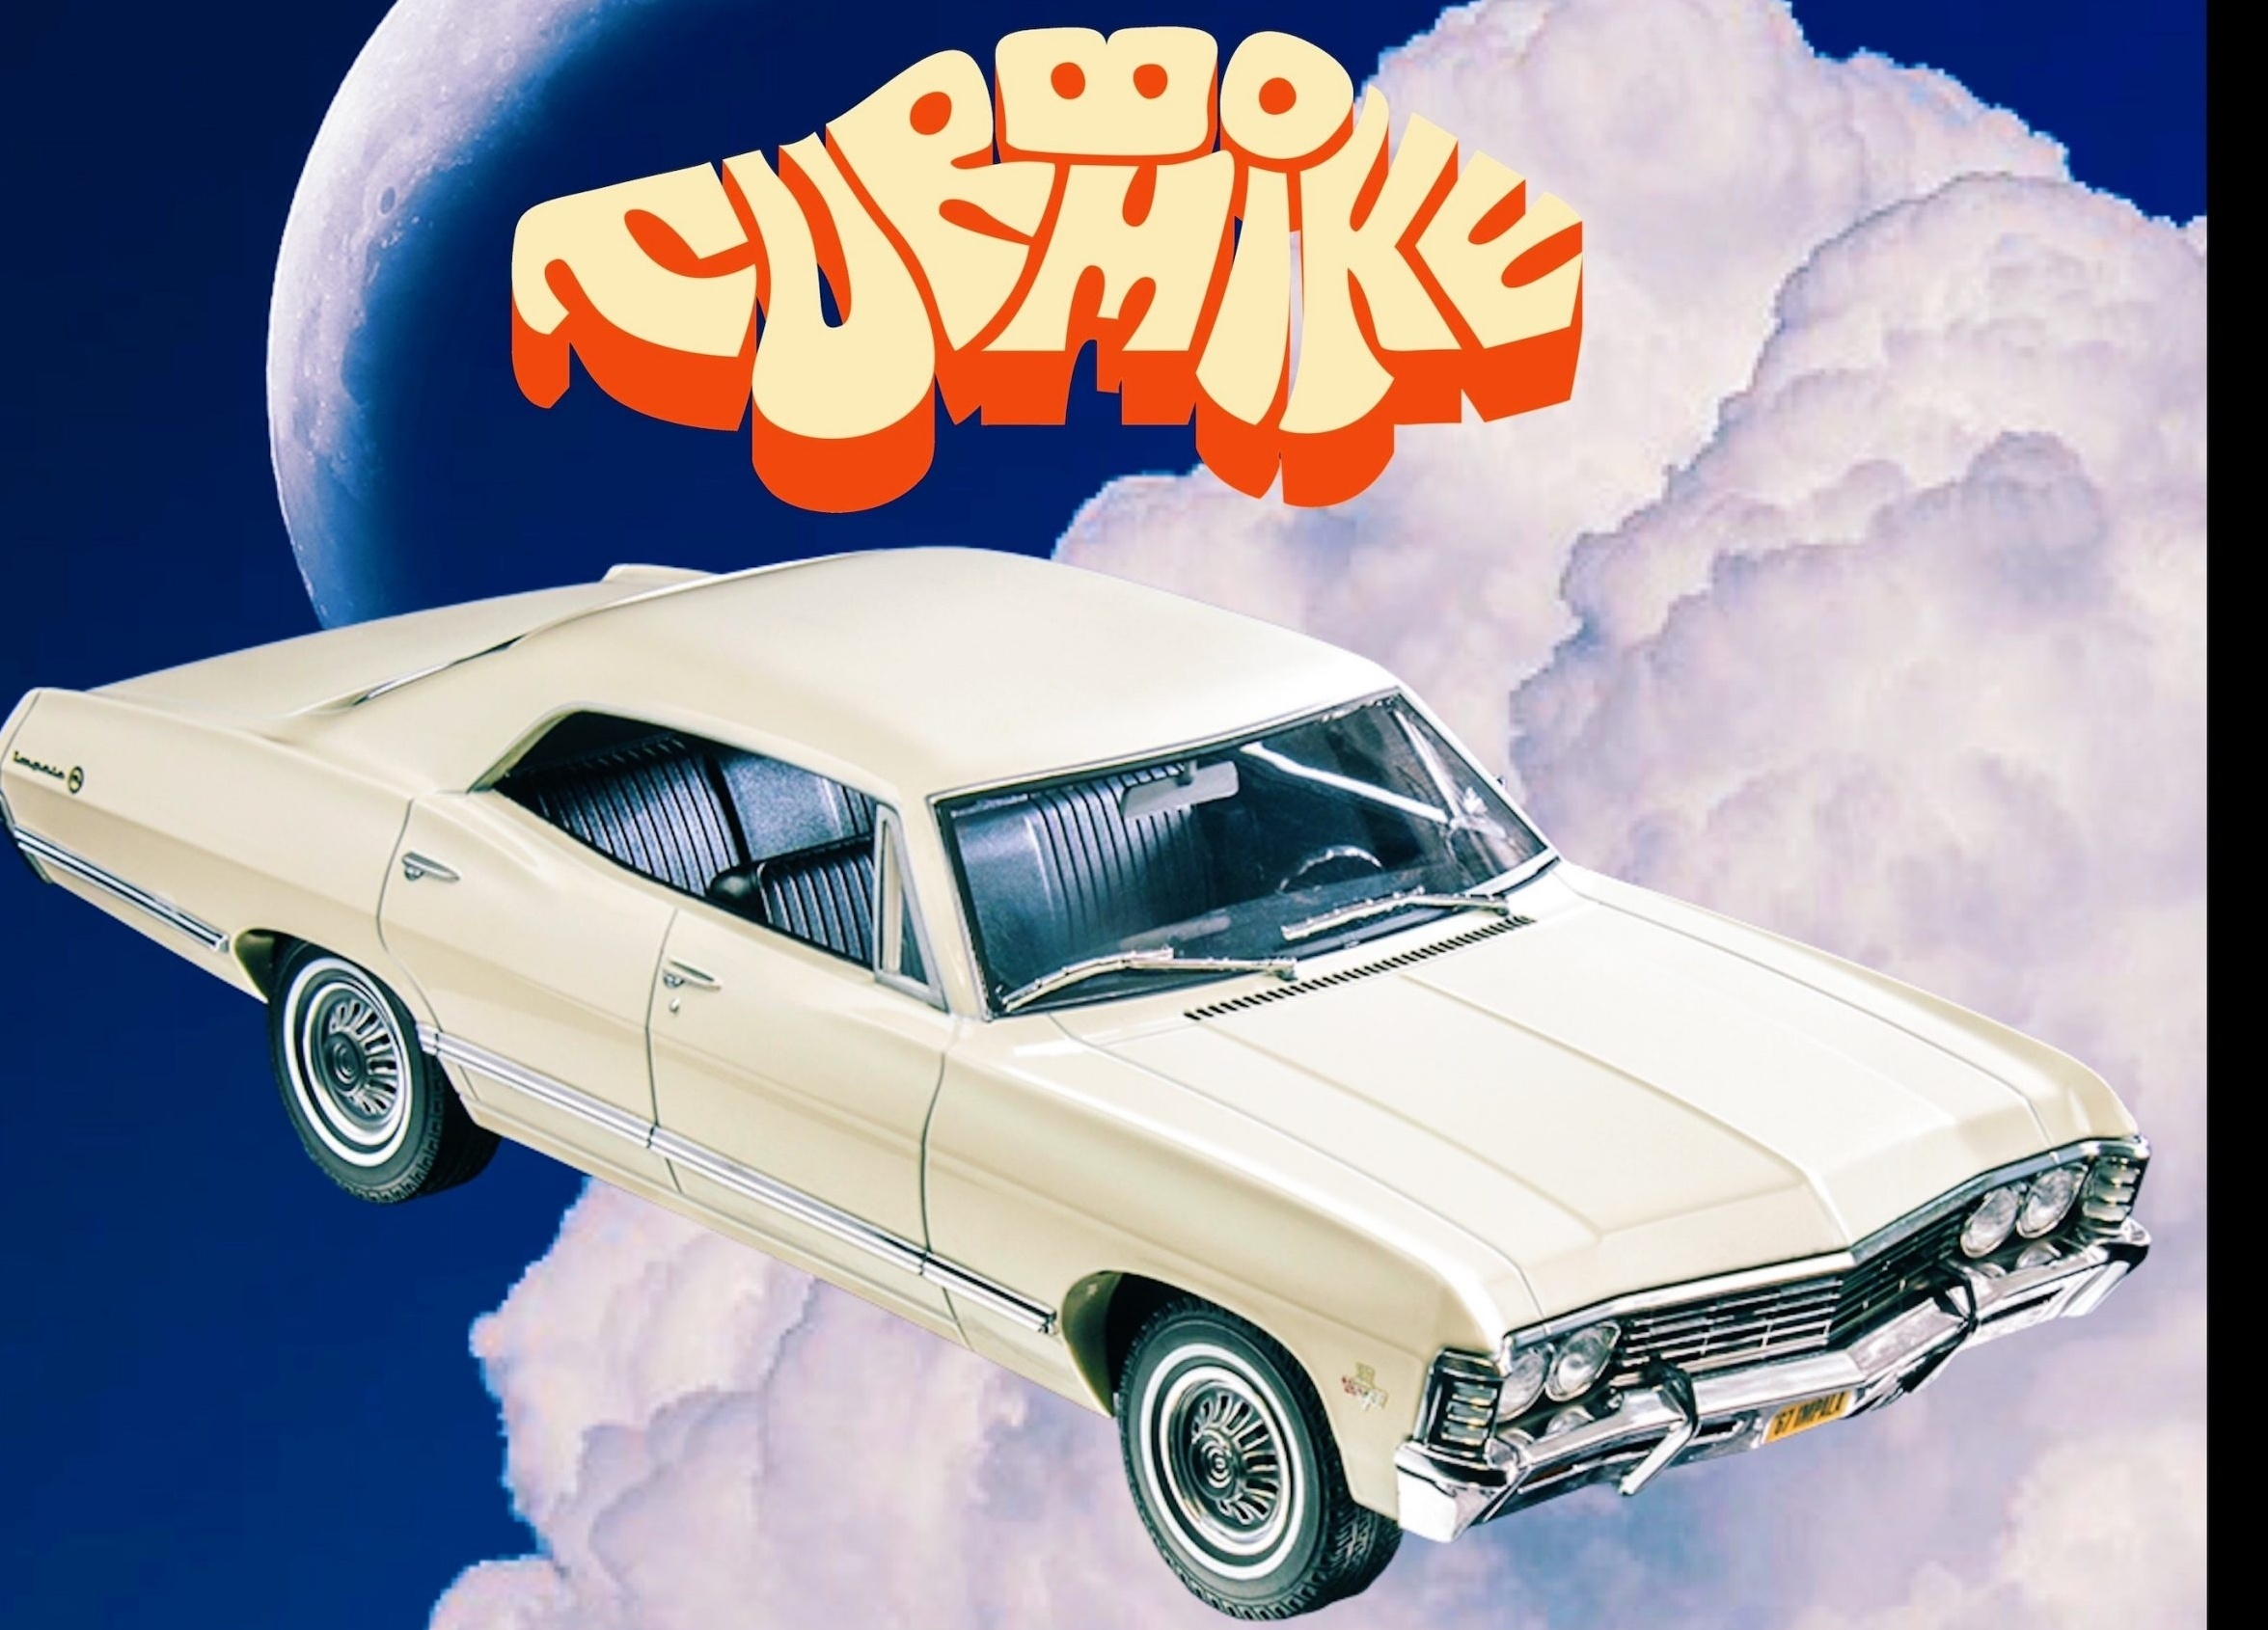 Turbomike lanza su primer single homónimo